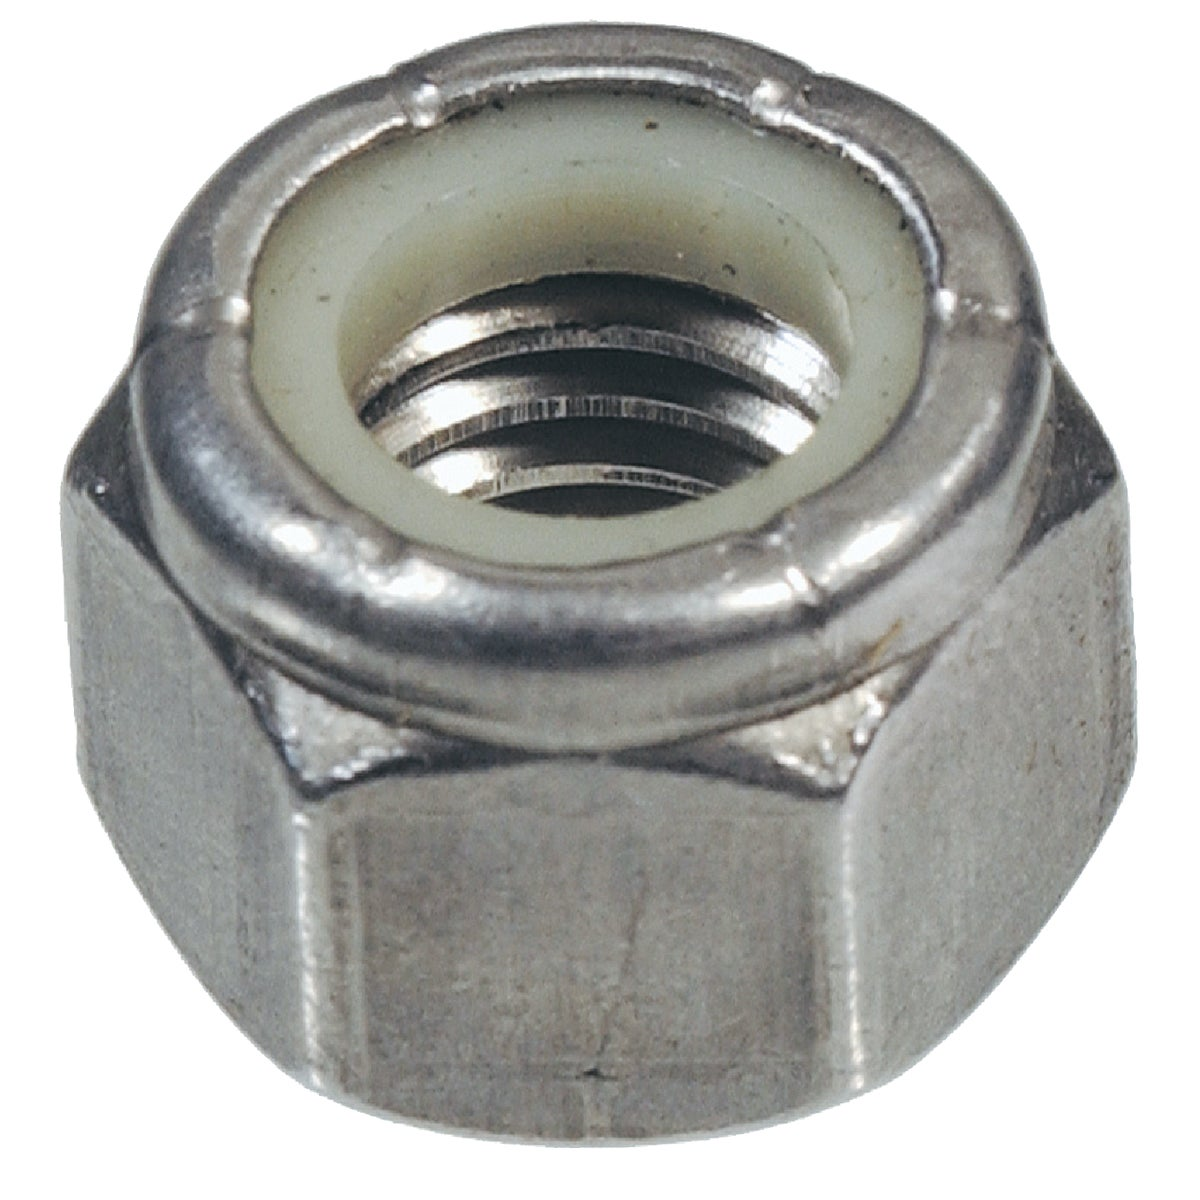 10-24 SS NYLON LOCK NUT - 829716 by Hillman Fastener